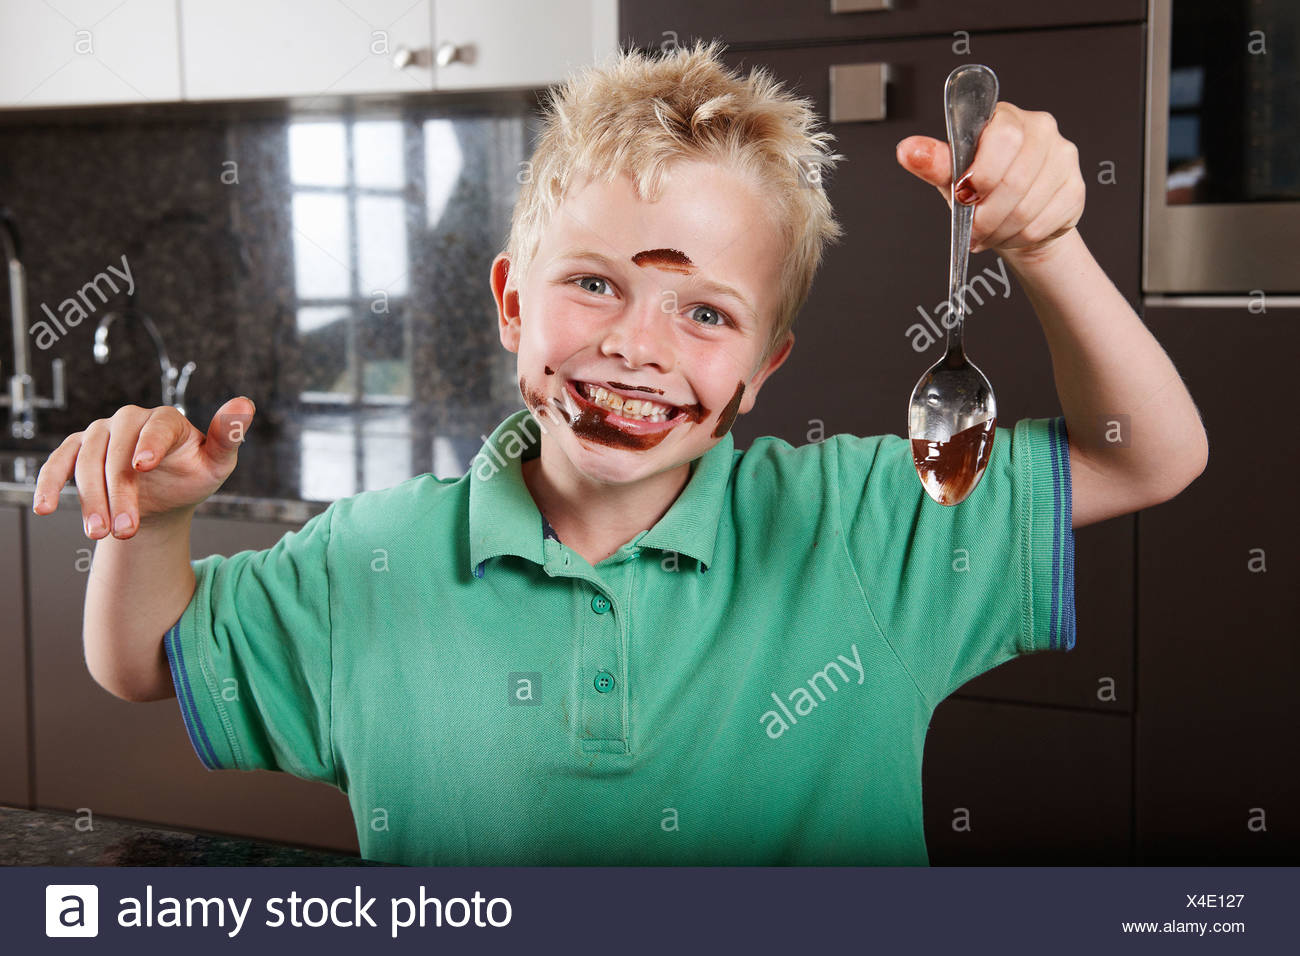 Boy in kitchen with cake mix on his face - Stock Image